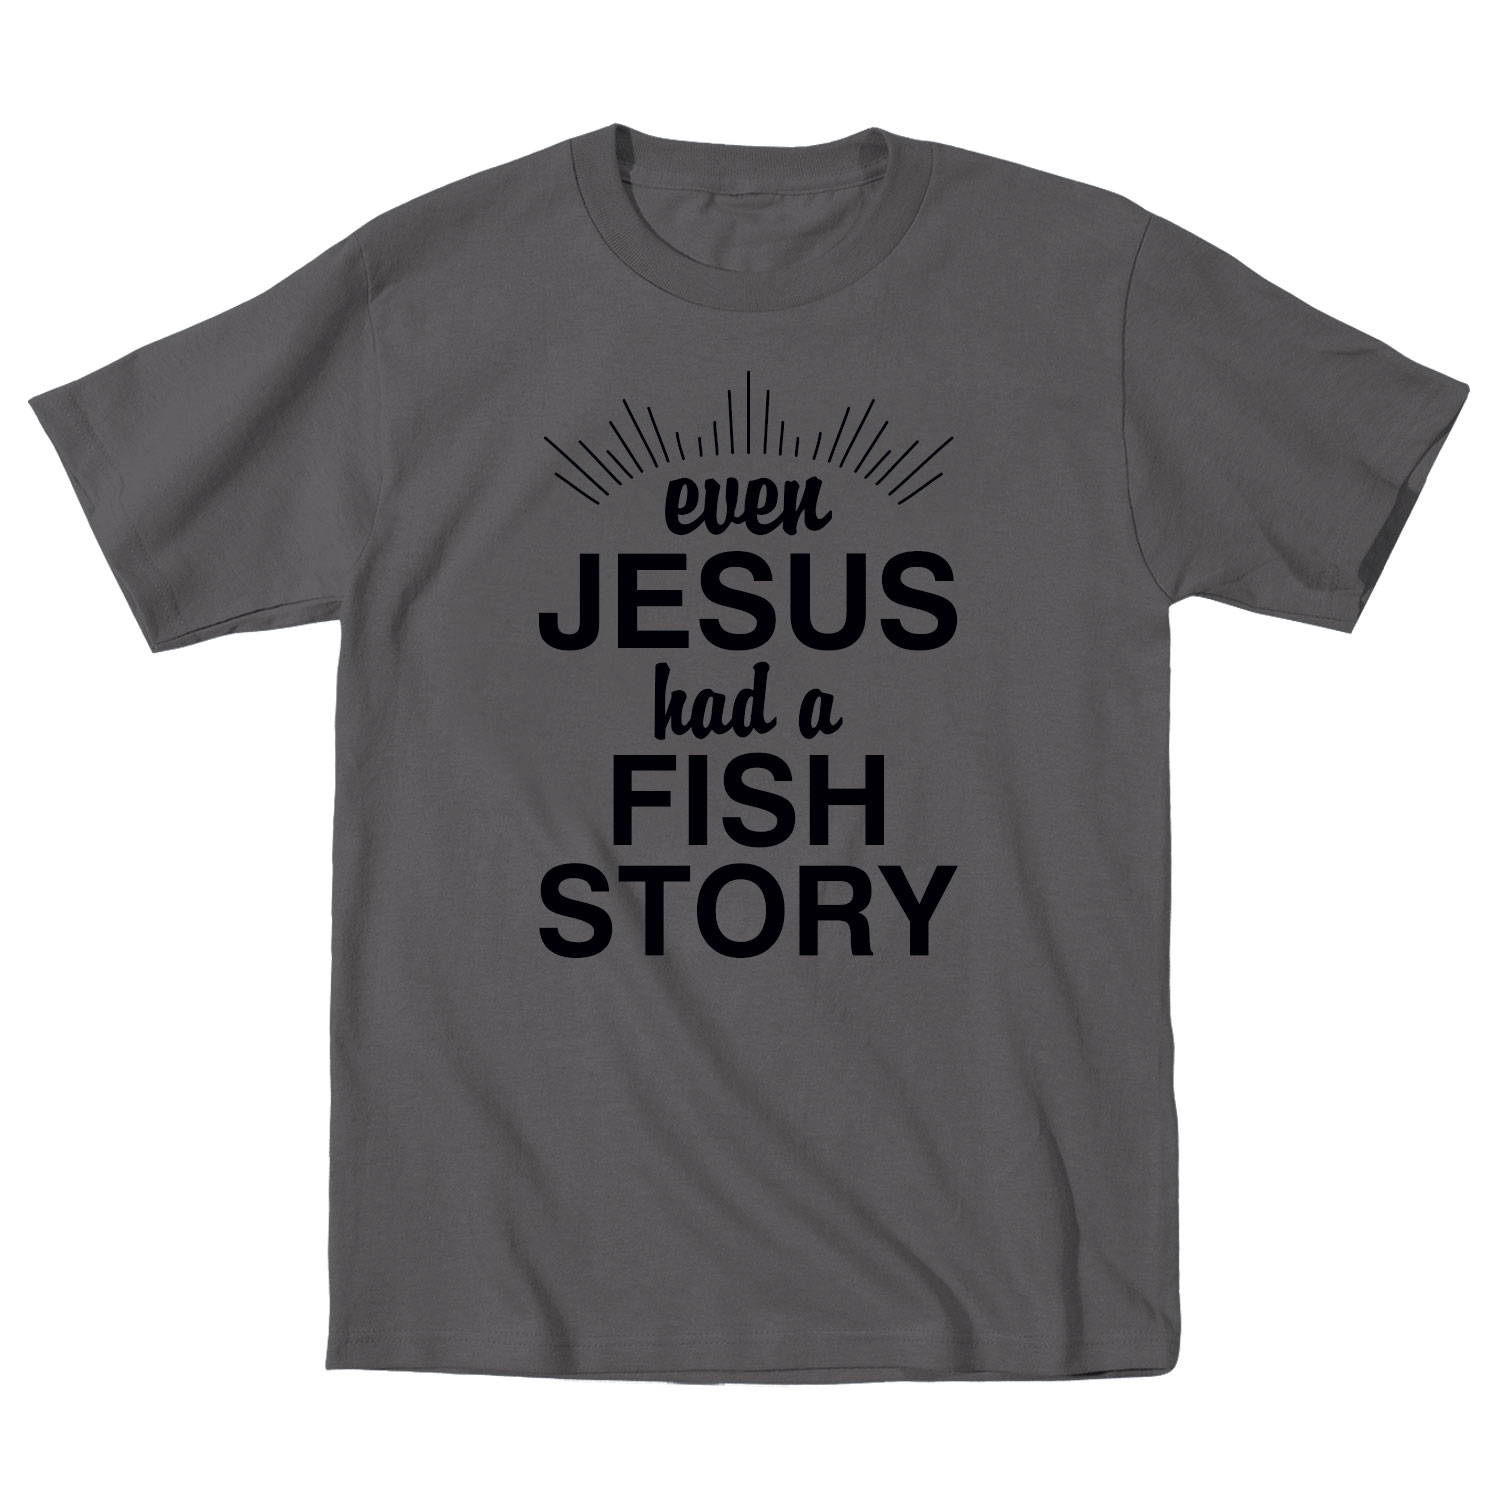 Even Jesus Has A Fish Story Christian Relious Humor Faith